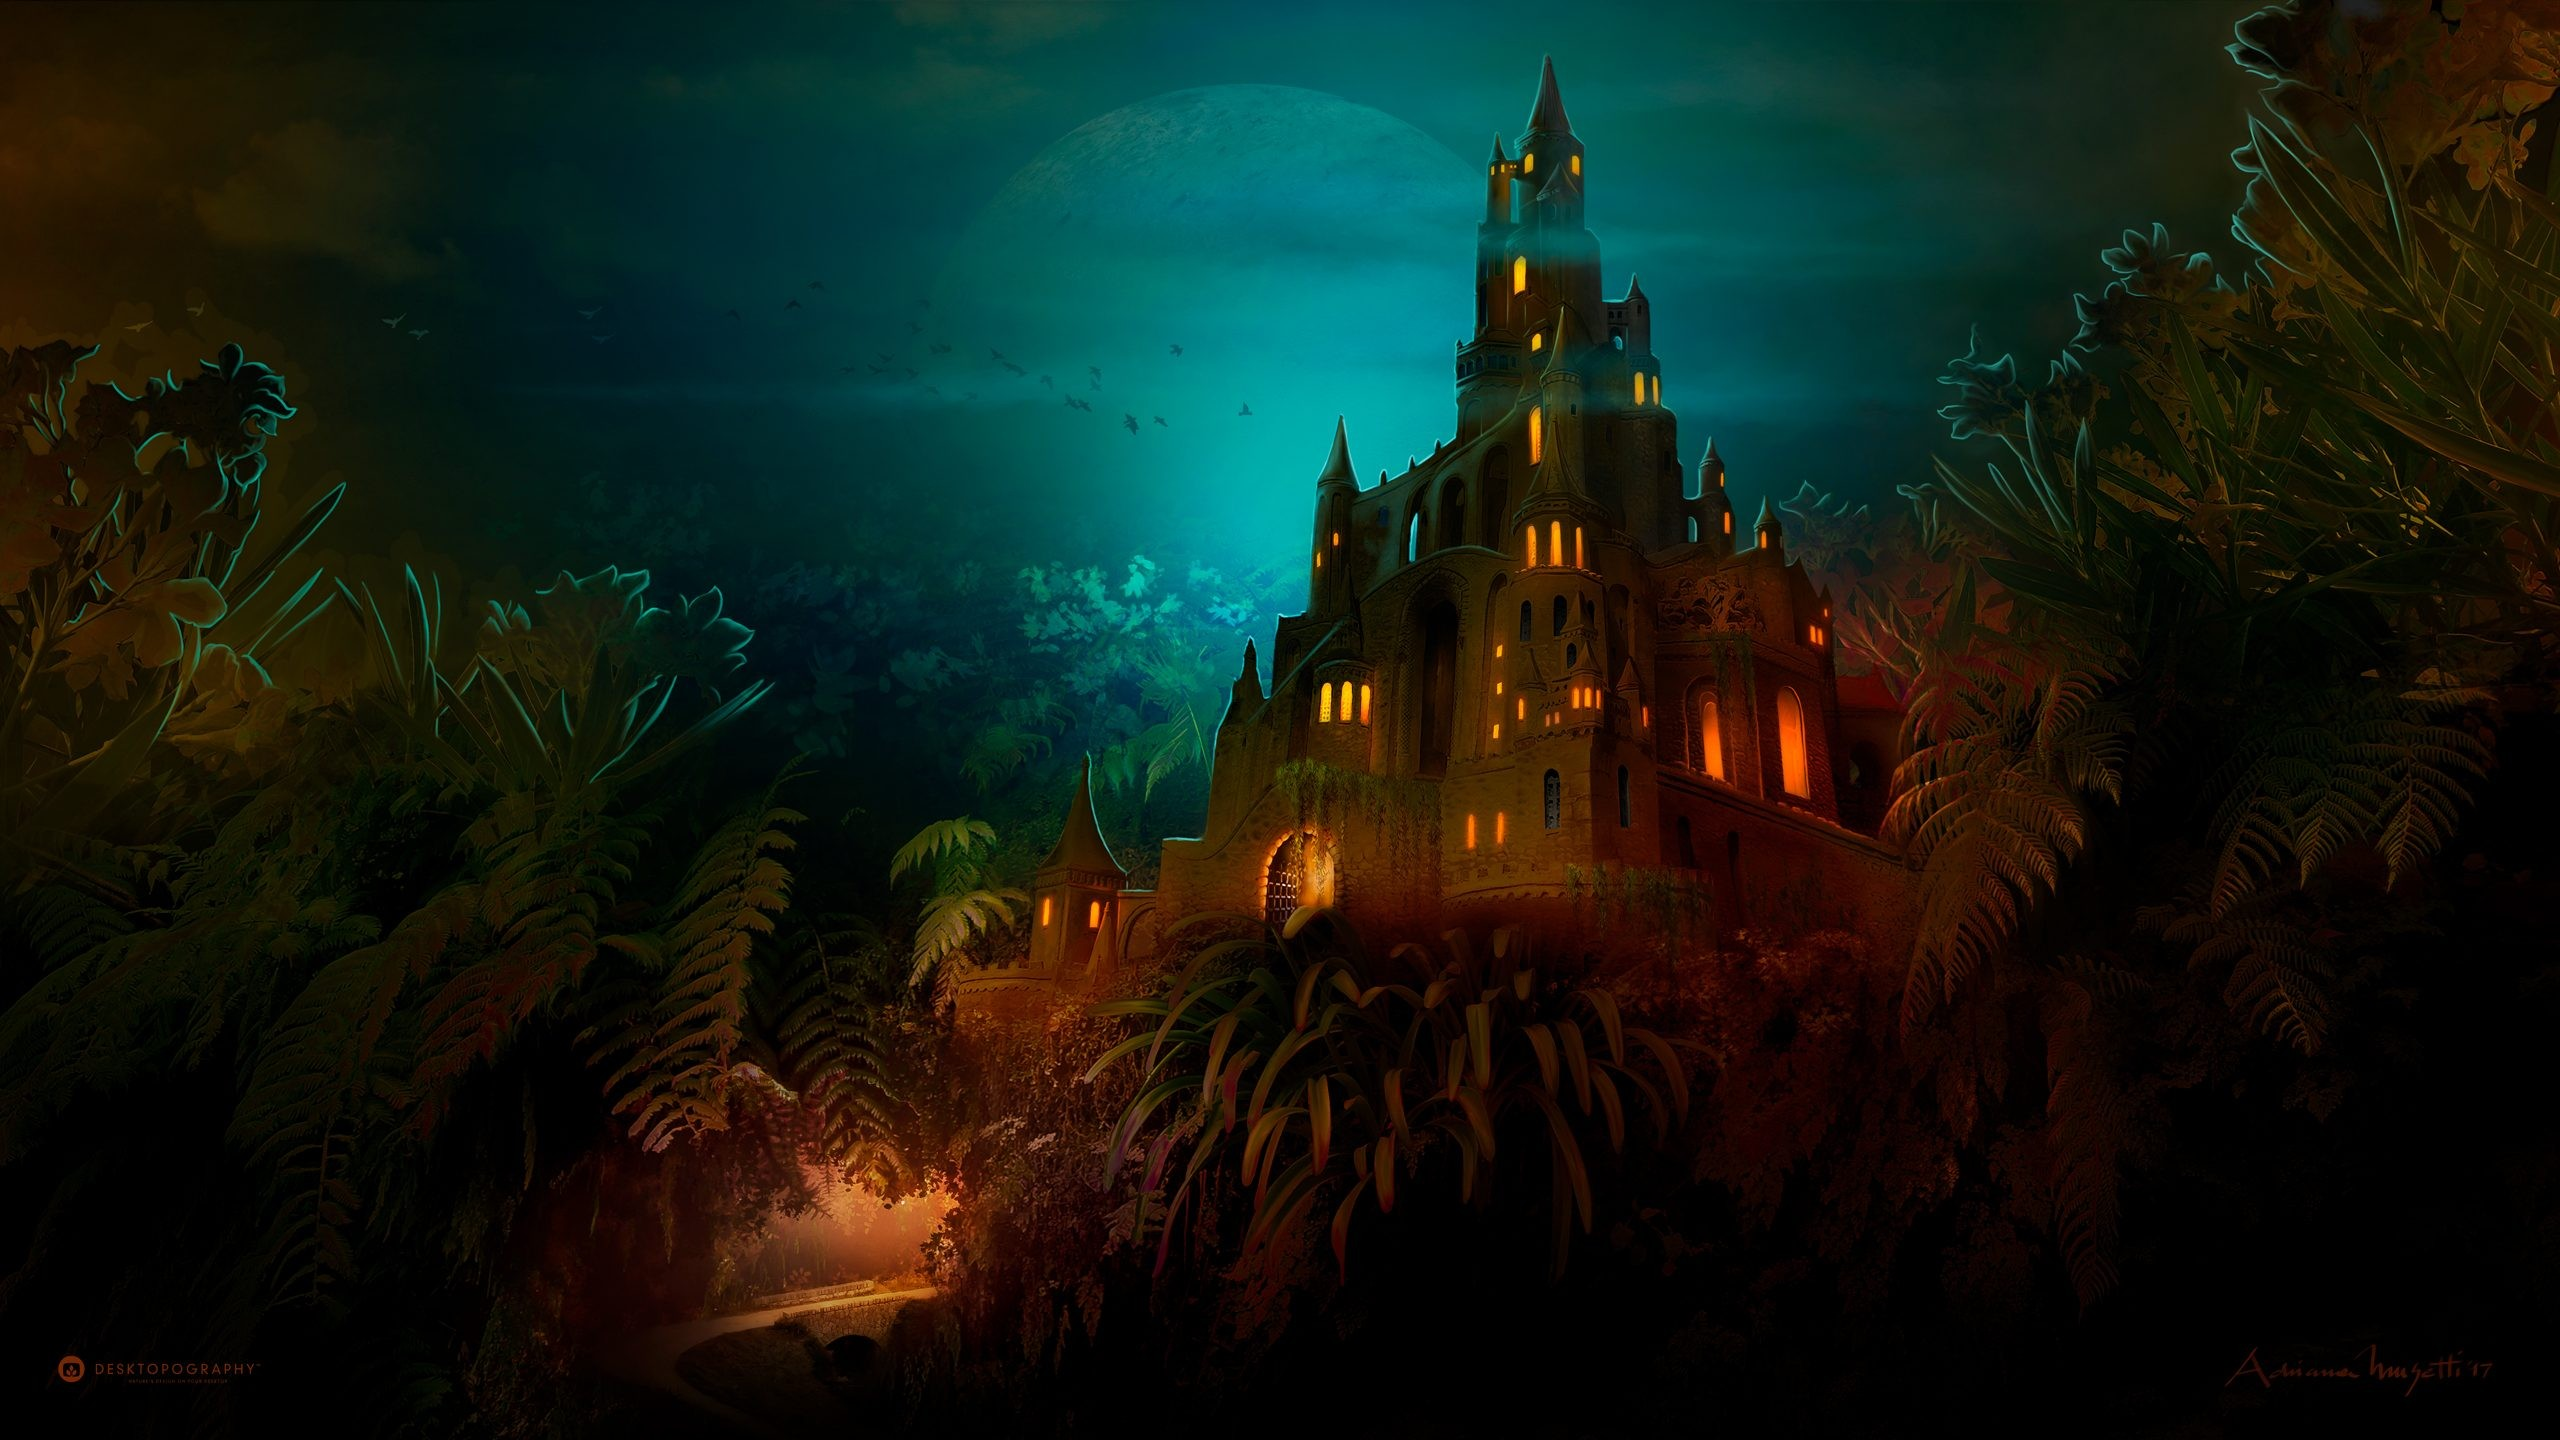 Cute Animated Wallpapers Free Download Lilliput Castle Dark Night Wallpapers Hd Wallpapers Id